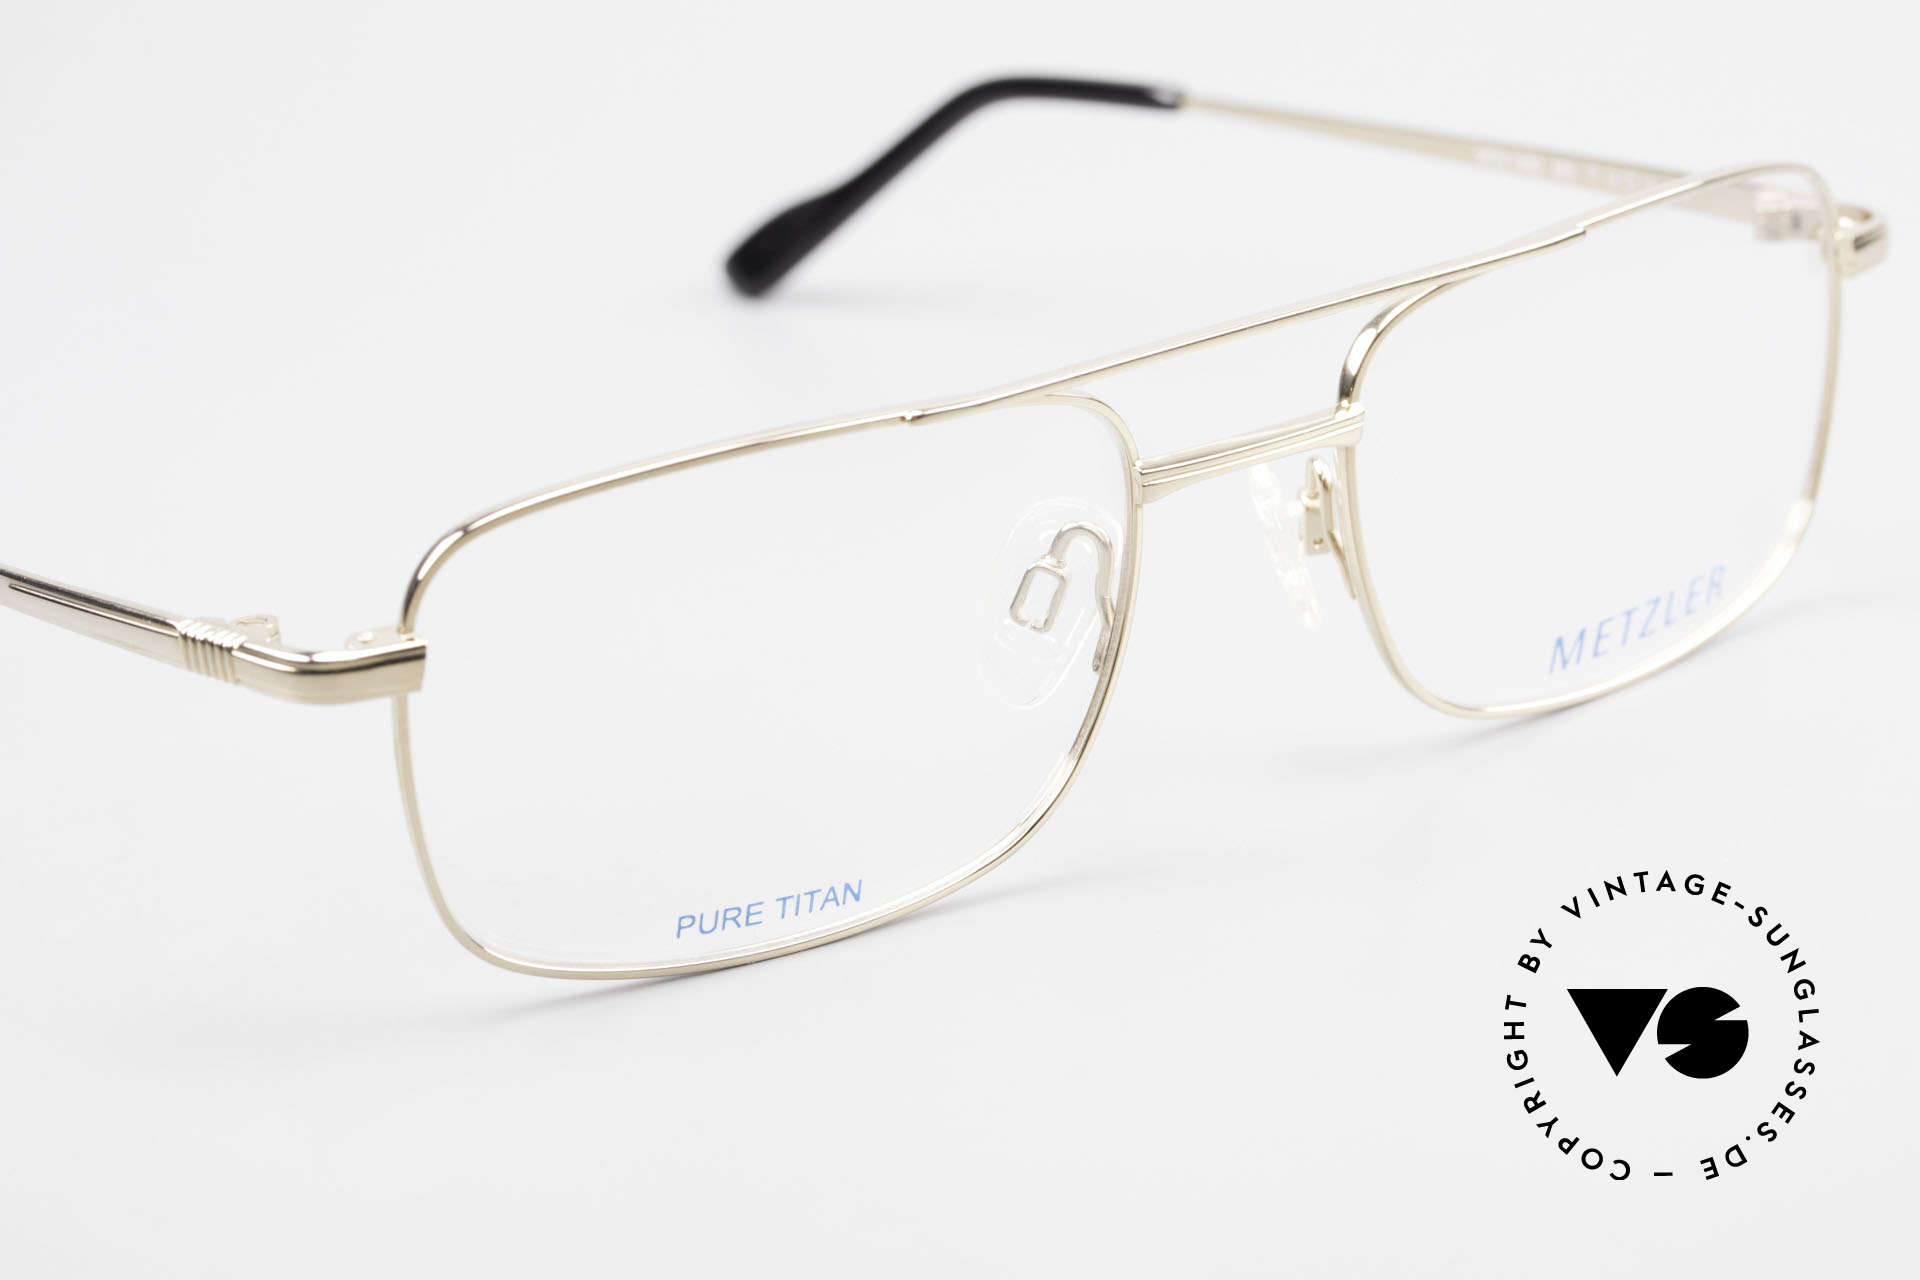 Metzler 1680 90's Titan Frame Gold Plated, NO RETRO eyewear, but a 30 years old ORIGINAL!, Made for Men